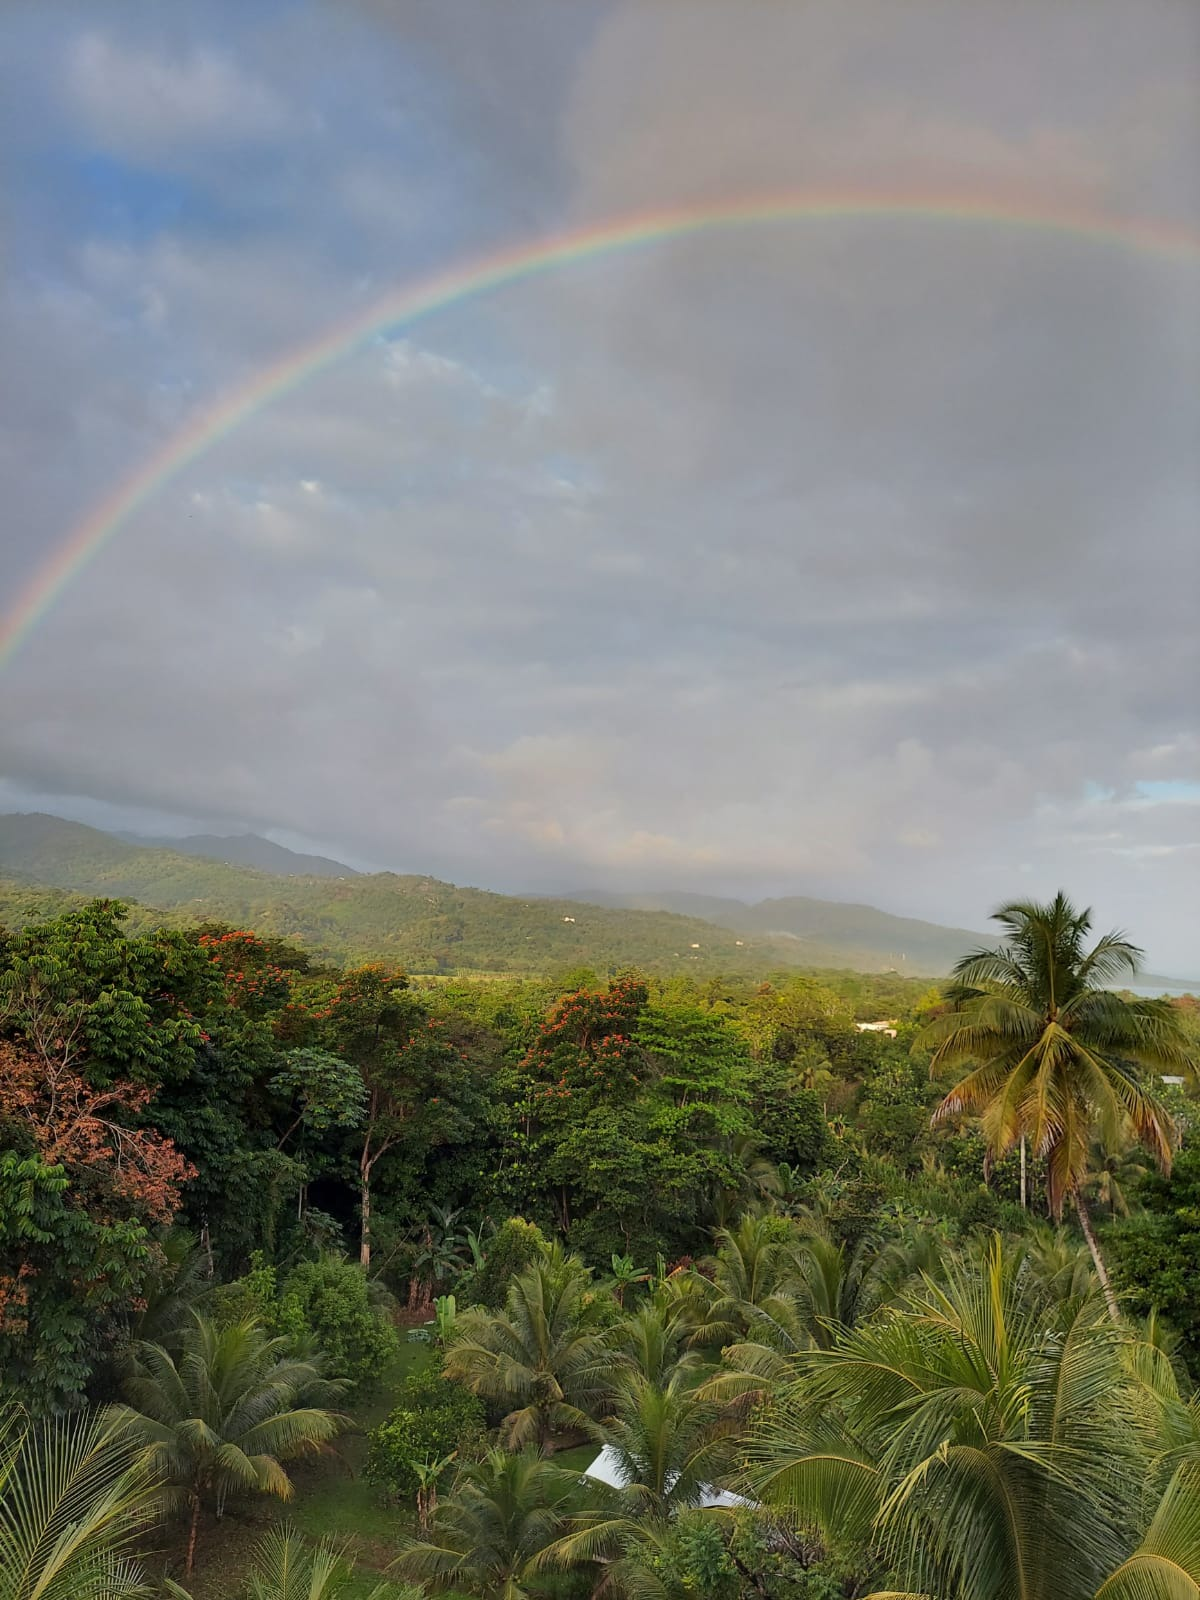 rainforest treetops with rainbow in the sky